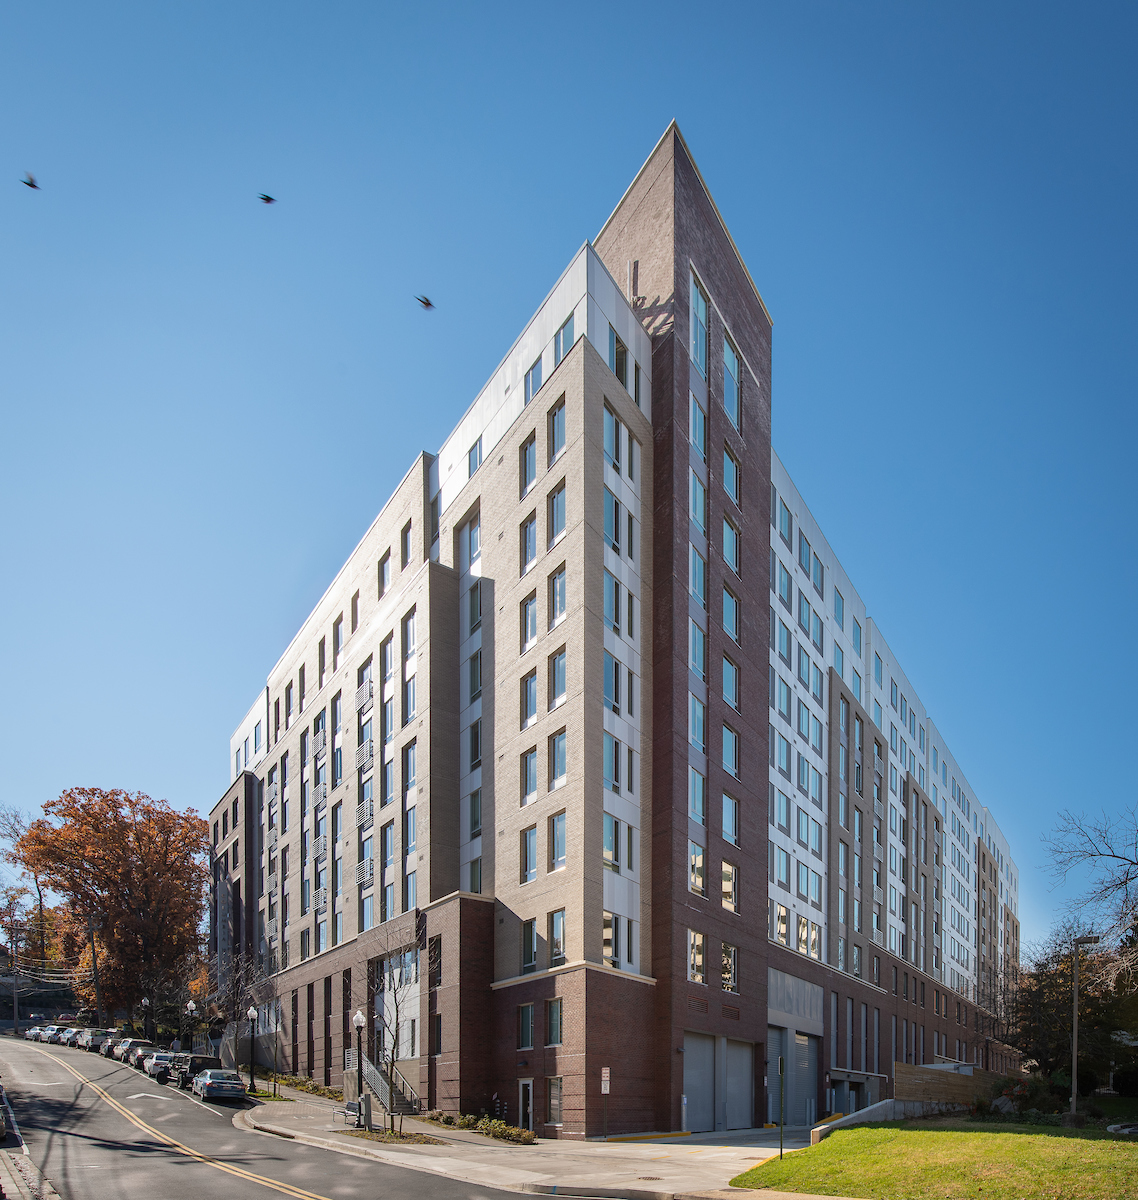 One Of The First Projects To Be Developed Under Arlington County S Award Winning Columbia Pike Neighborhoods Plan